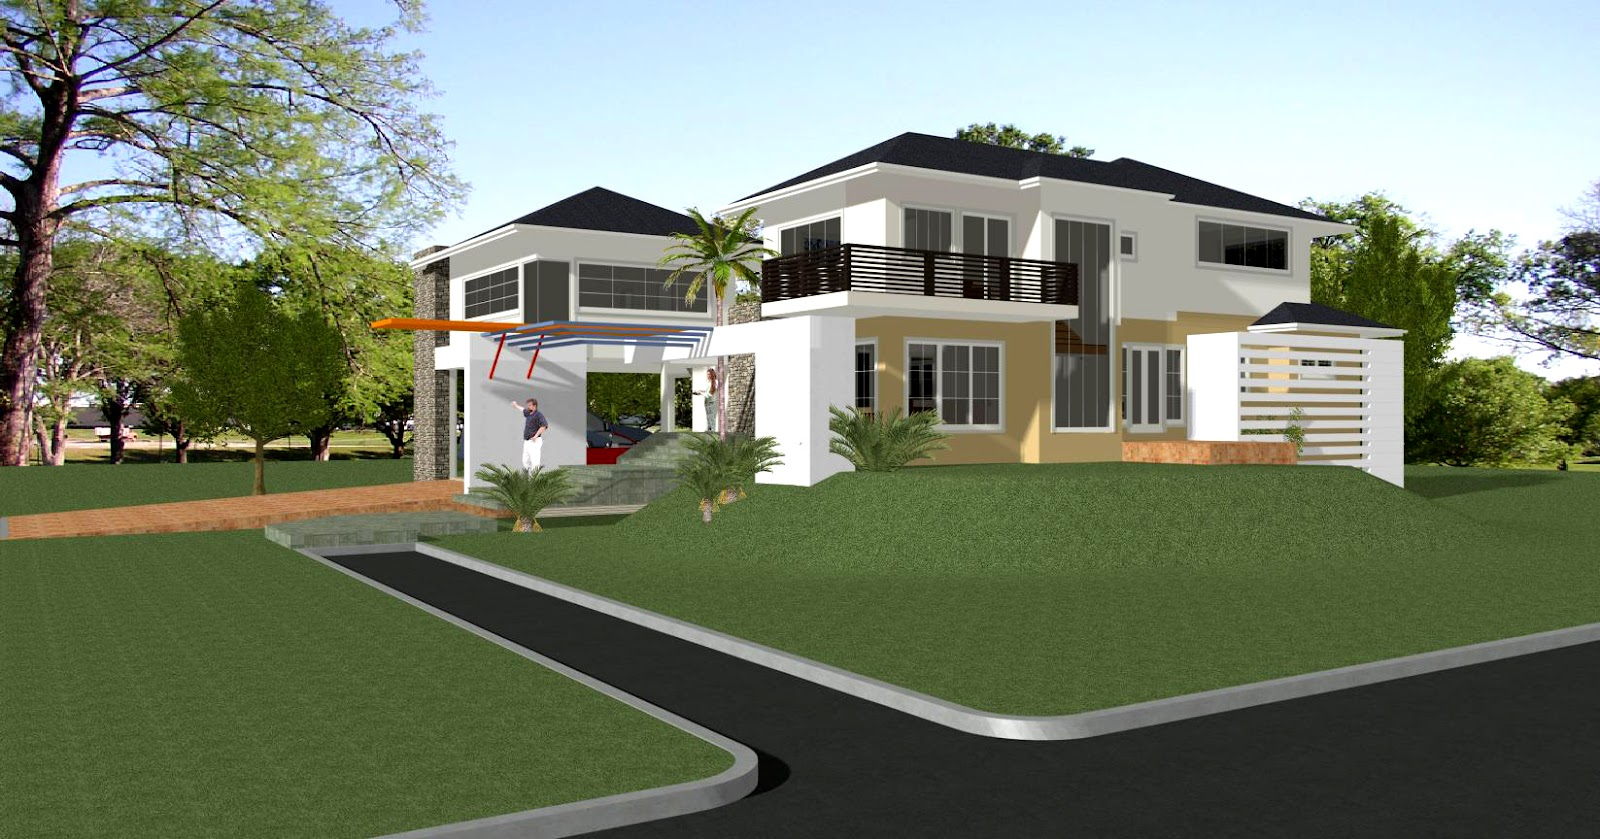 House designs in the philippines in iloilo by erecre group New construction home plans